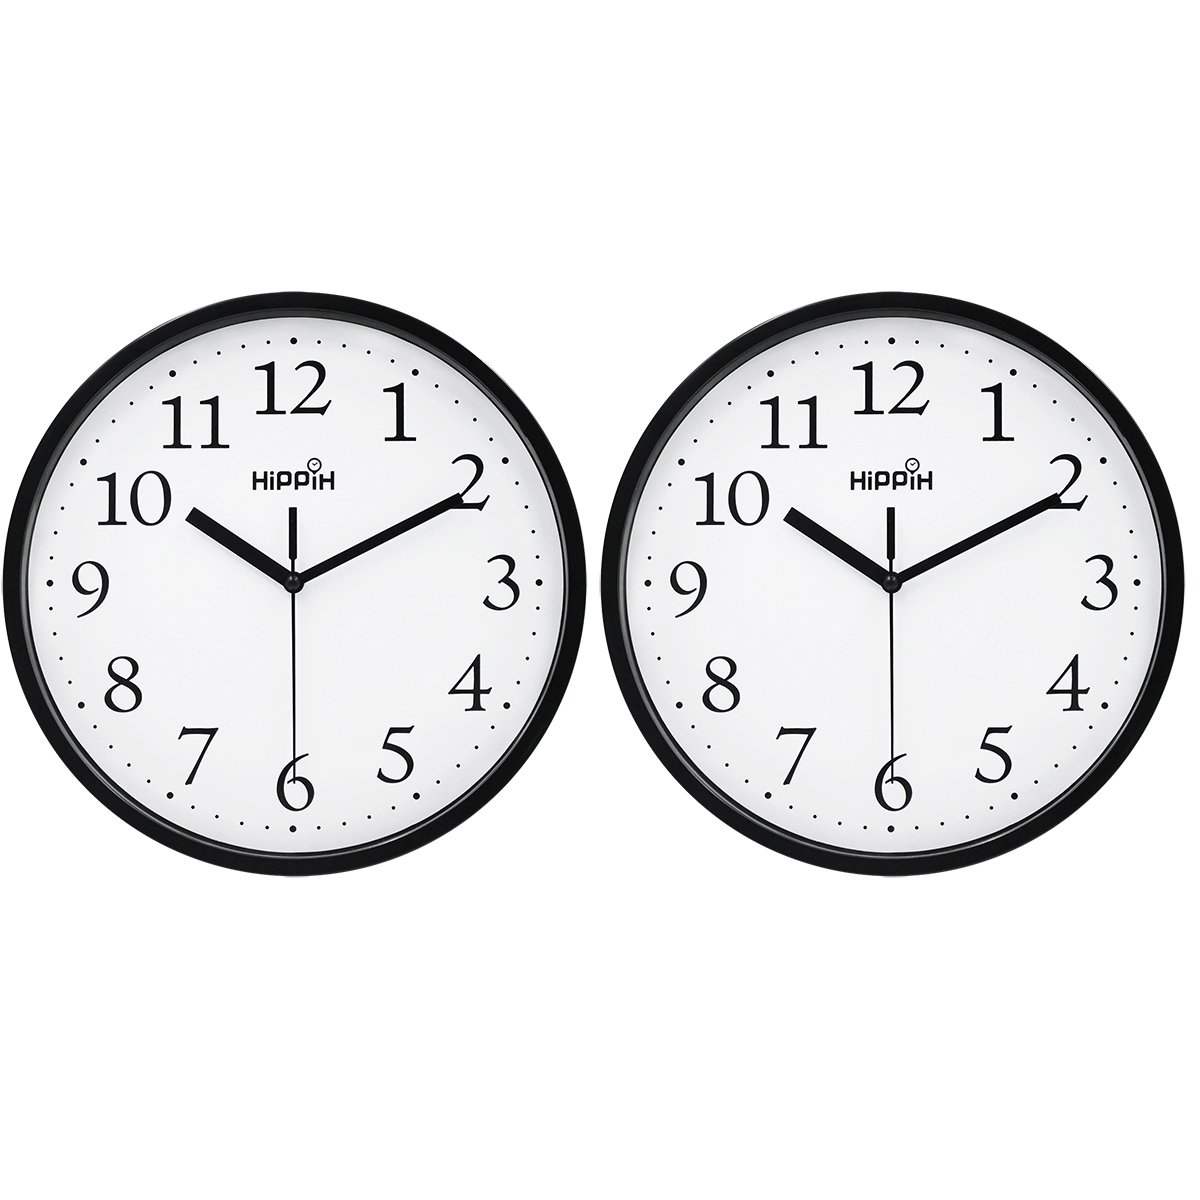 Hippih Black Wall Clock Silent Non Ticking Quality Quartz, 10 Inch Round Easy to Read For Home Office School Clock 2 pack